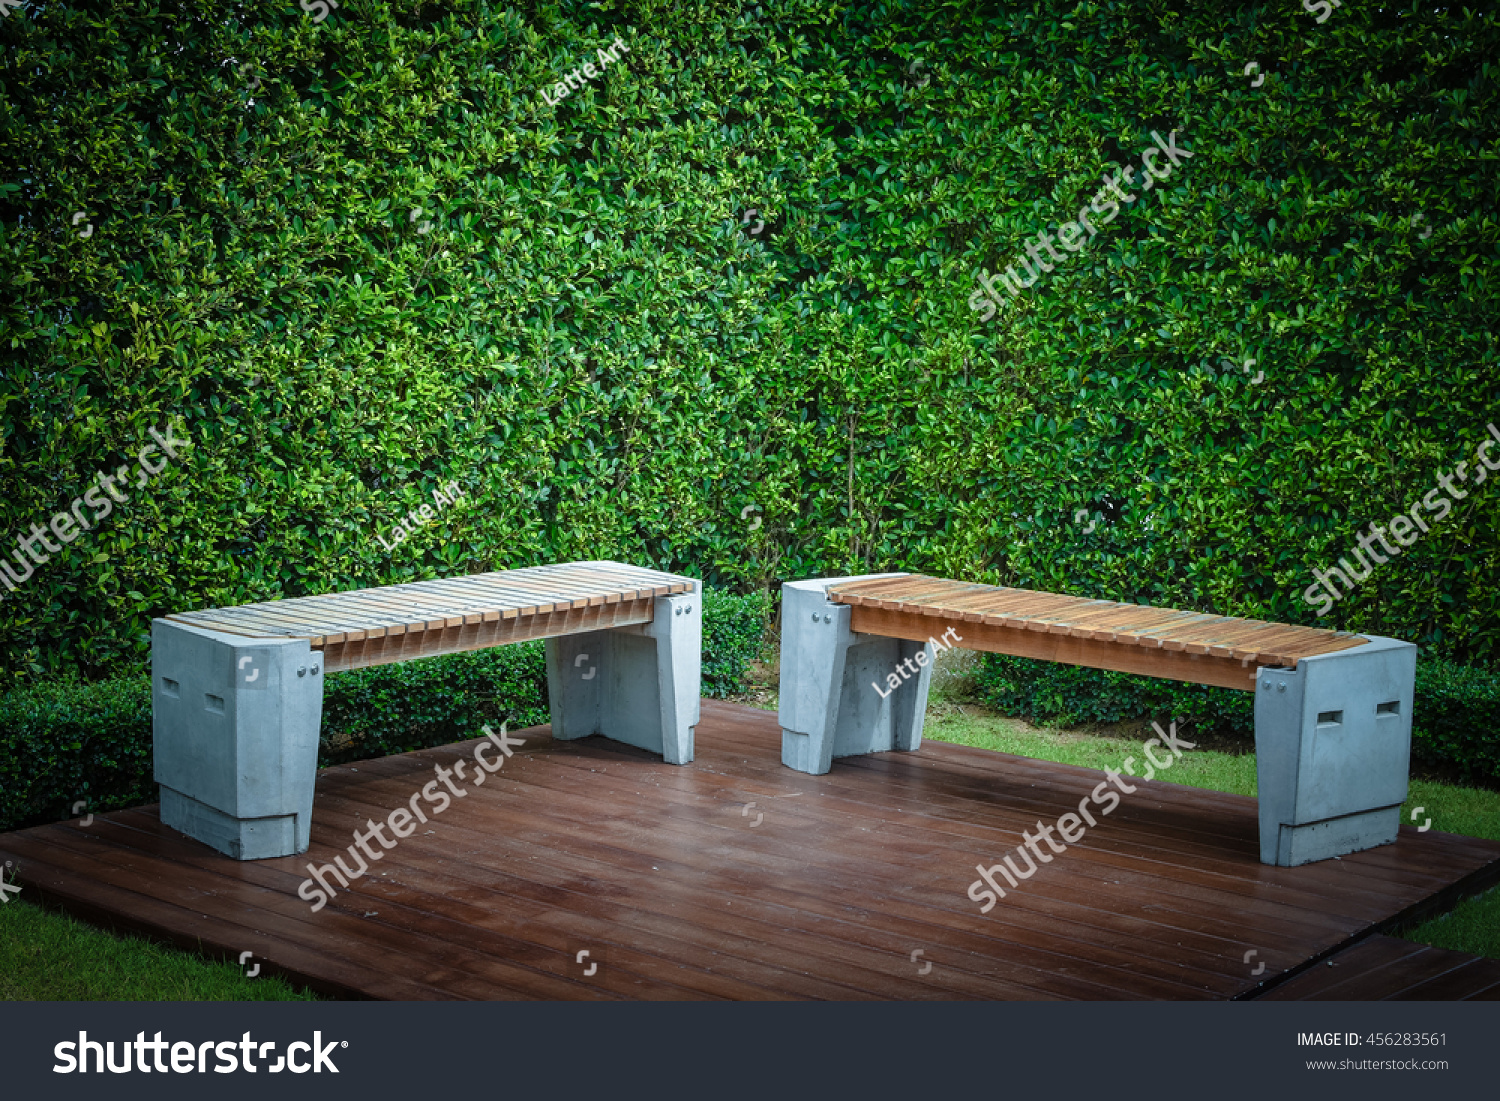 Garden Table And Chairs With Water Resistant Outdoor. Chair With Vintage  Color Effect. Garden